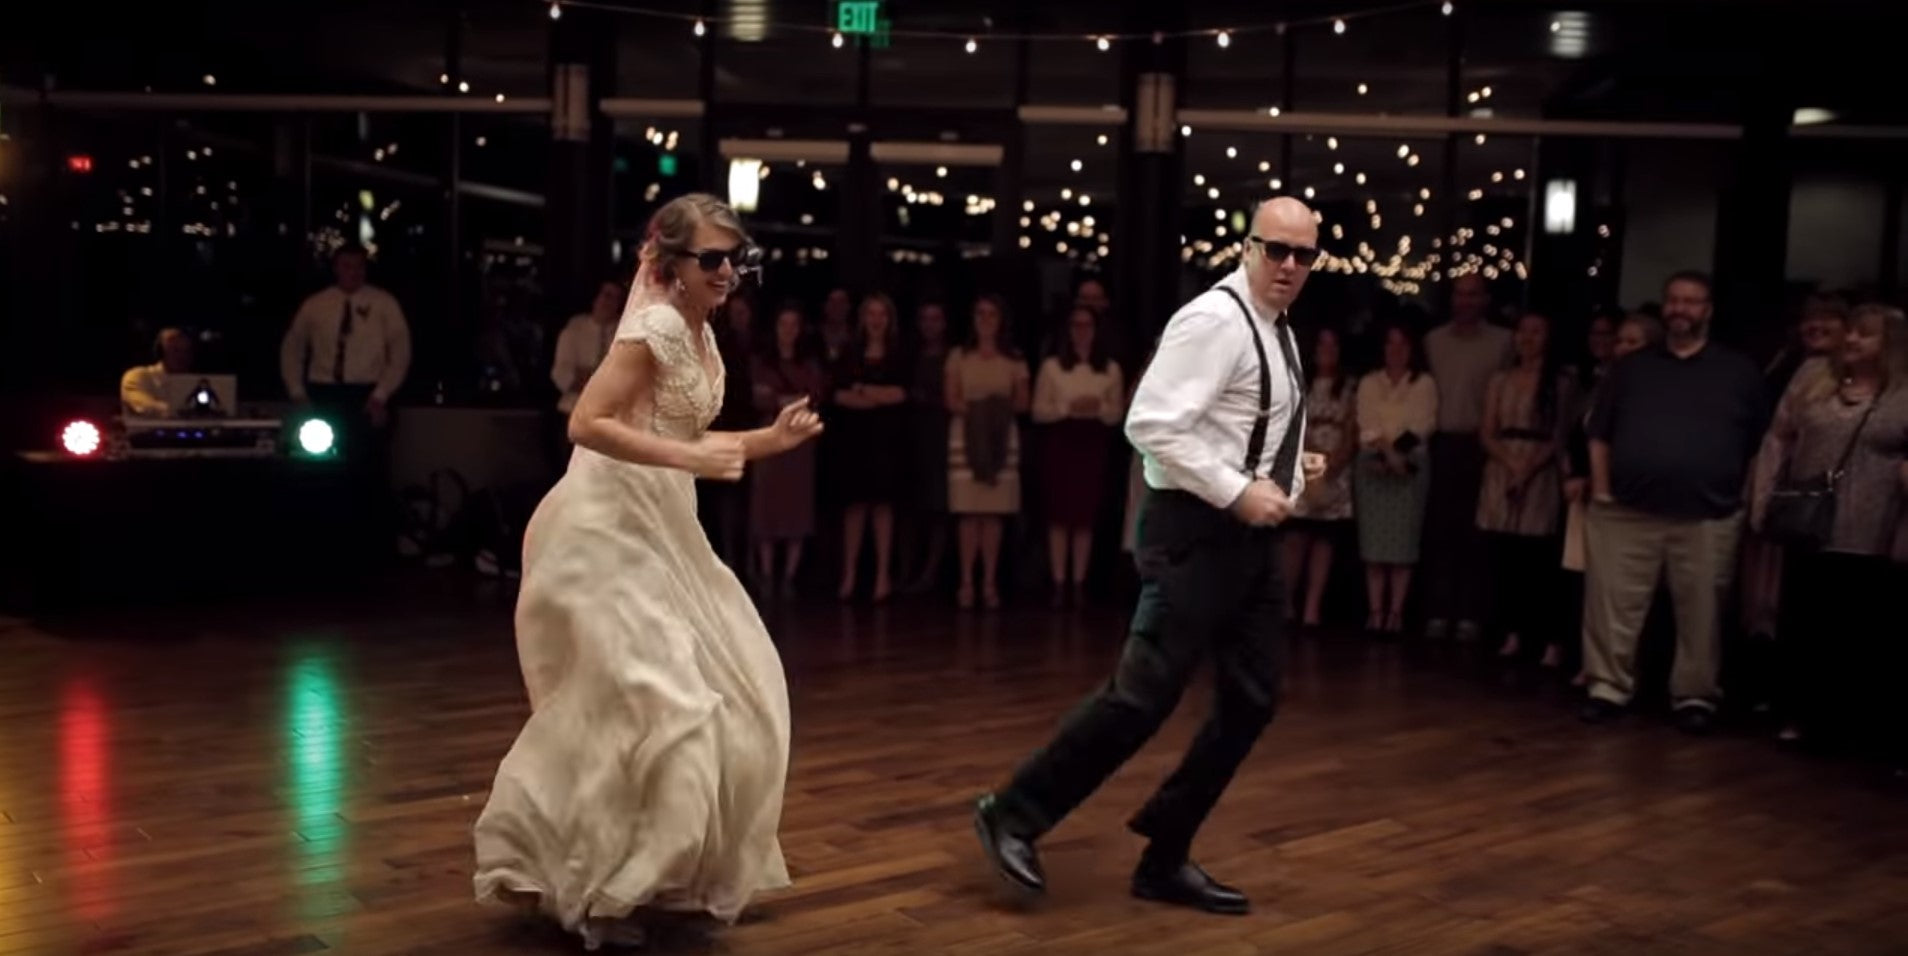 5 Brilliant Wedding Dance Ideas to Rock Your Social Media.